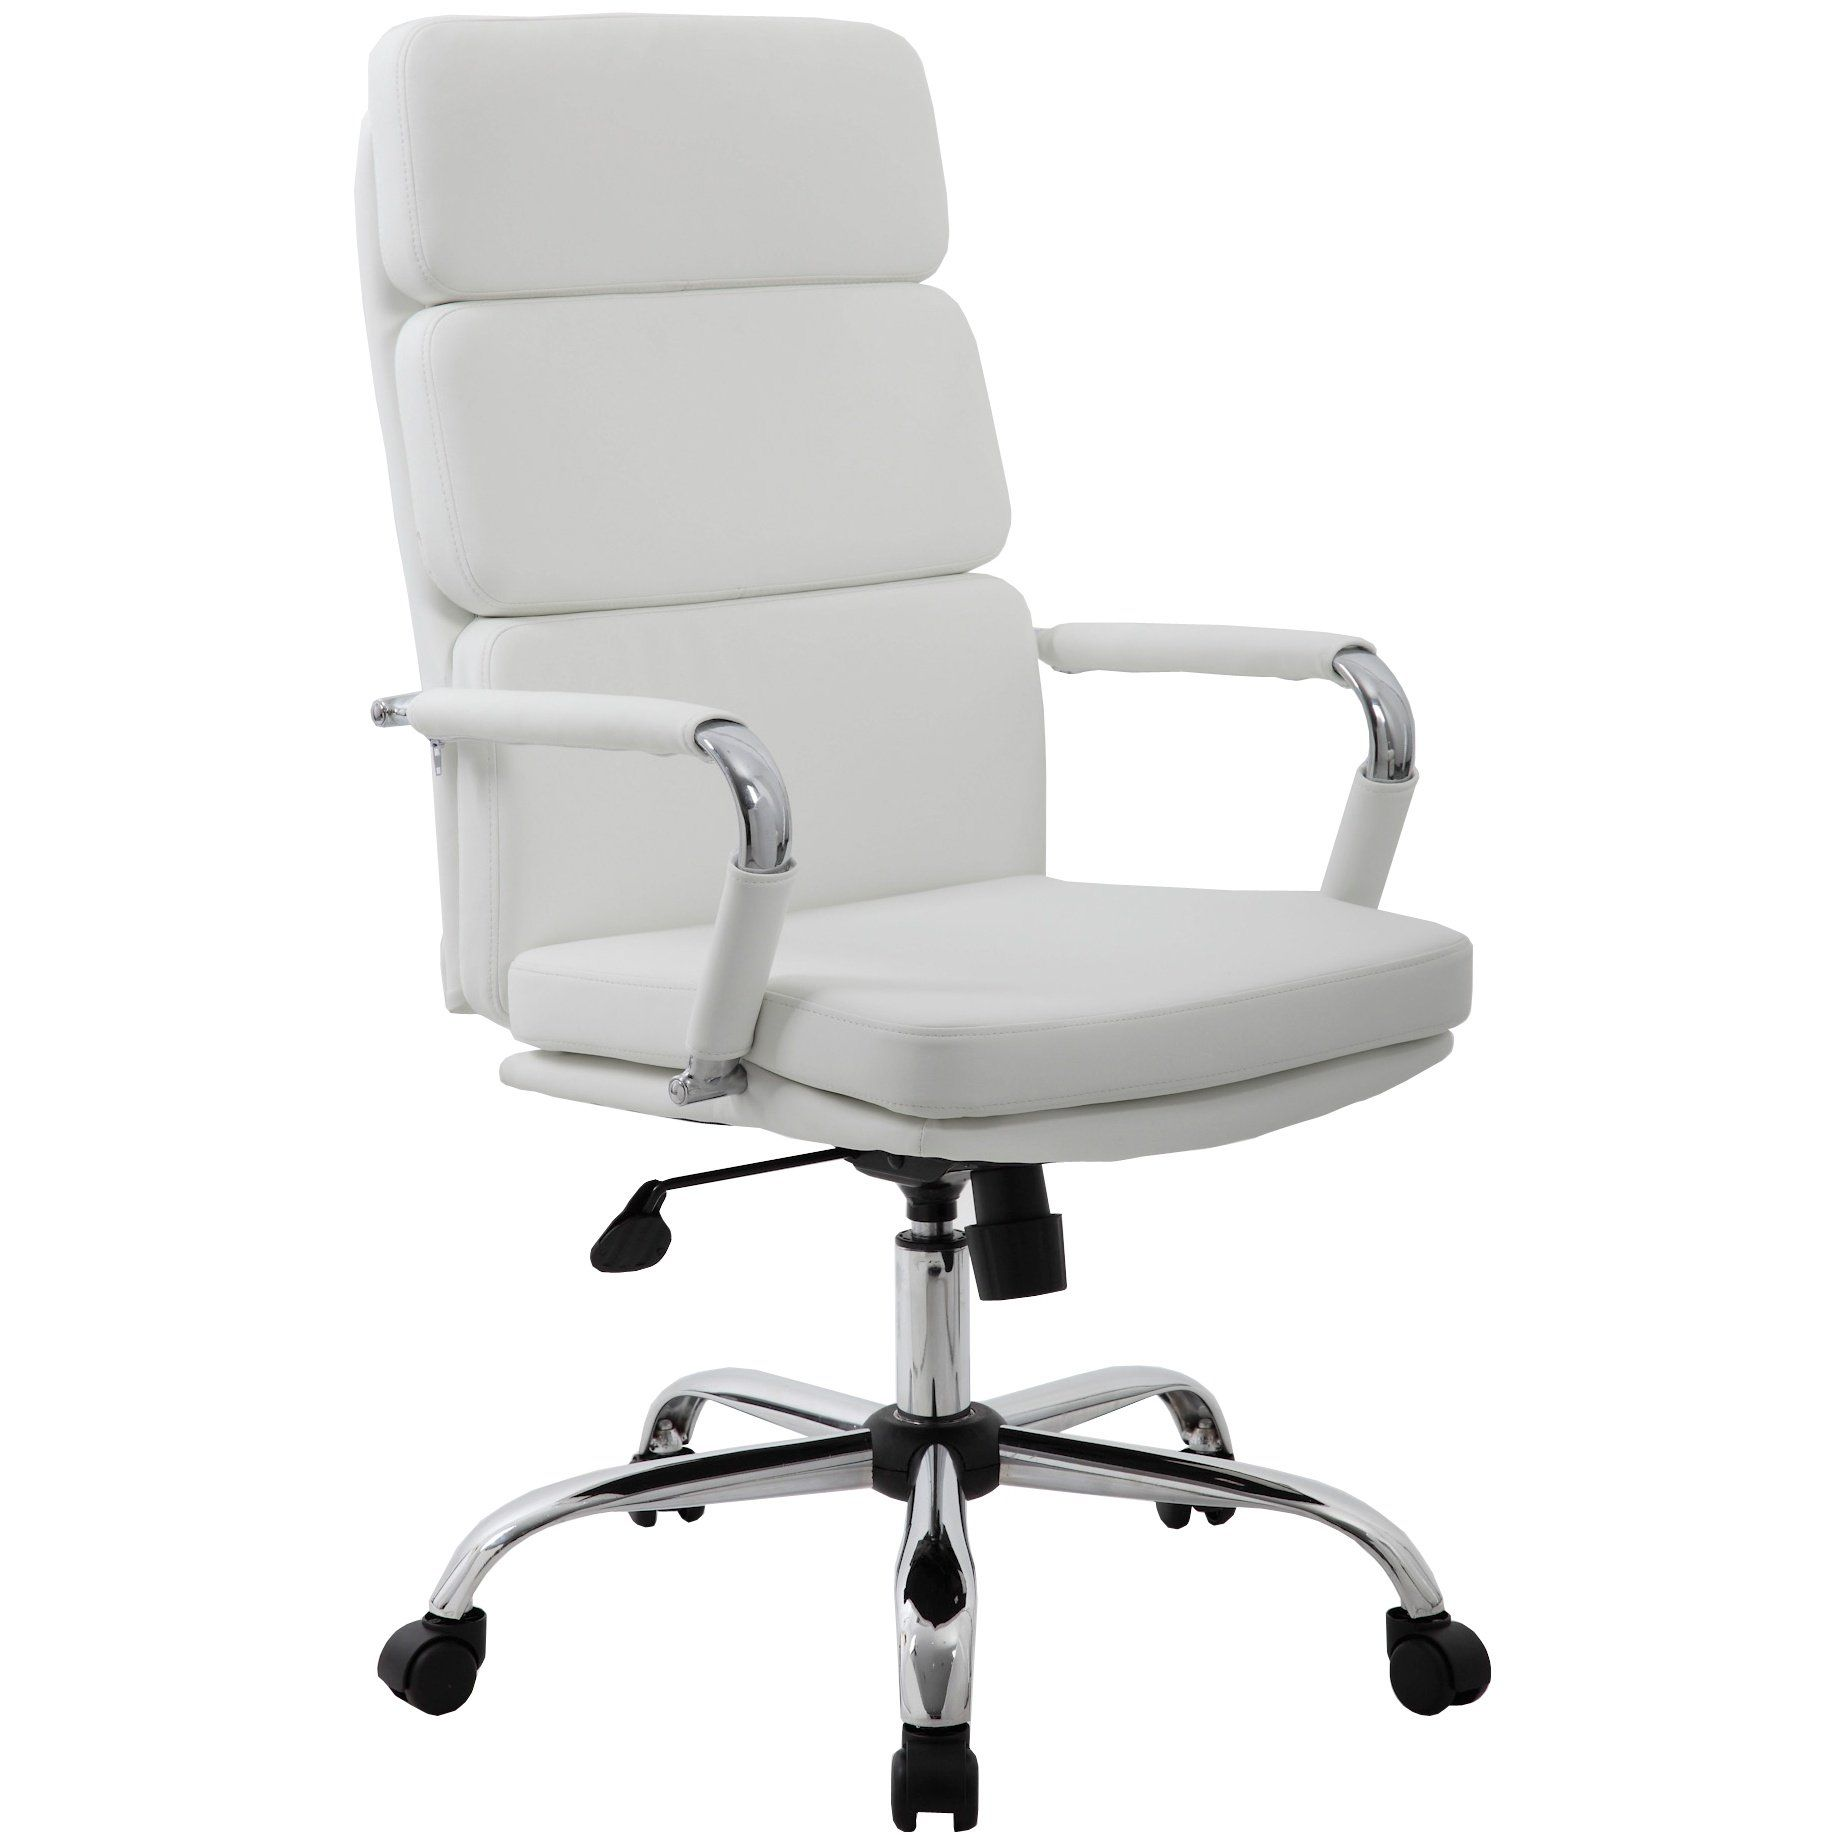 Ava white executive office chairs in 2020 executive